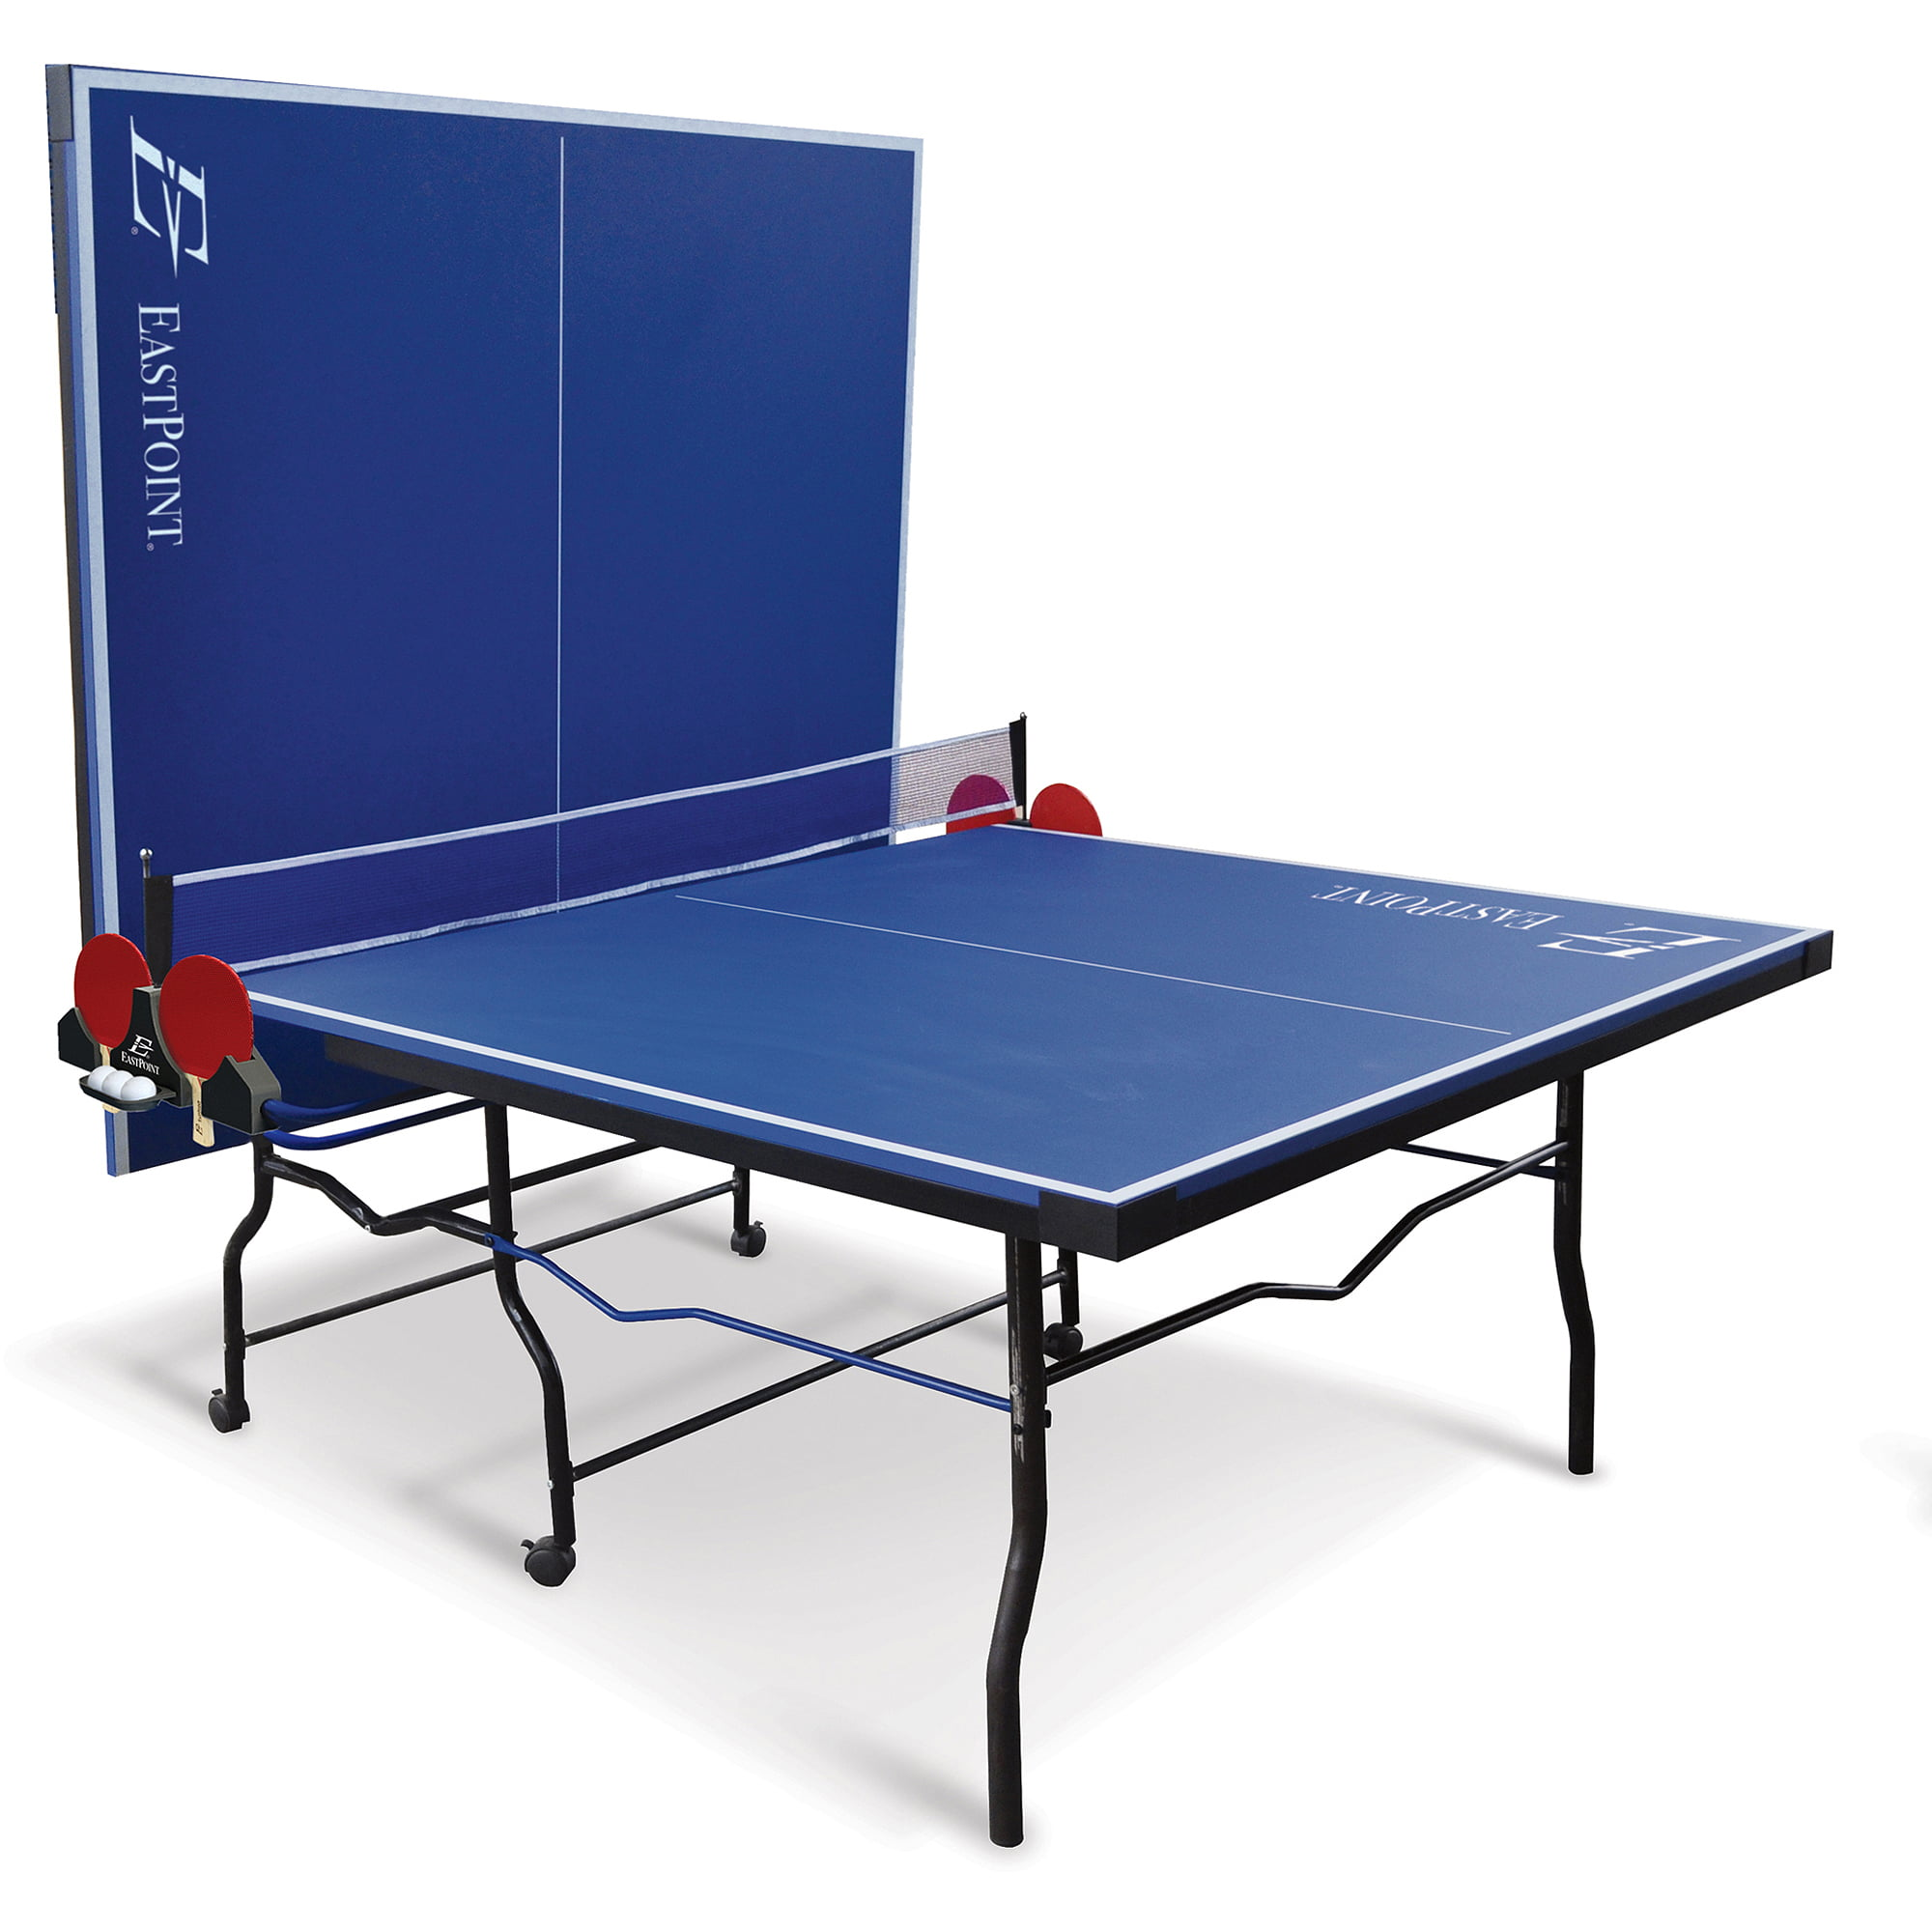 EastPoint Sports EPS 3000 2 Piece Table Tennis Table U2013 18mm Top    Walmart.com